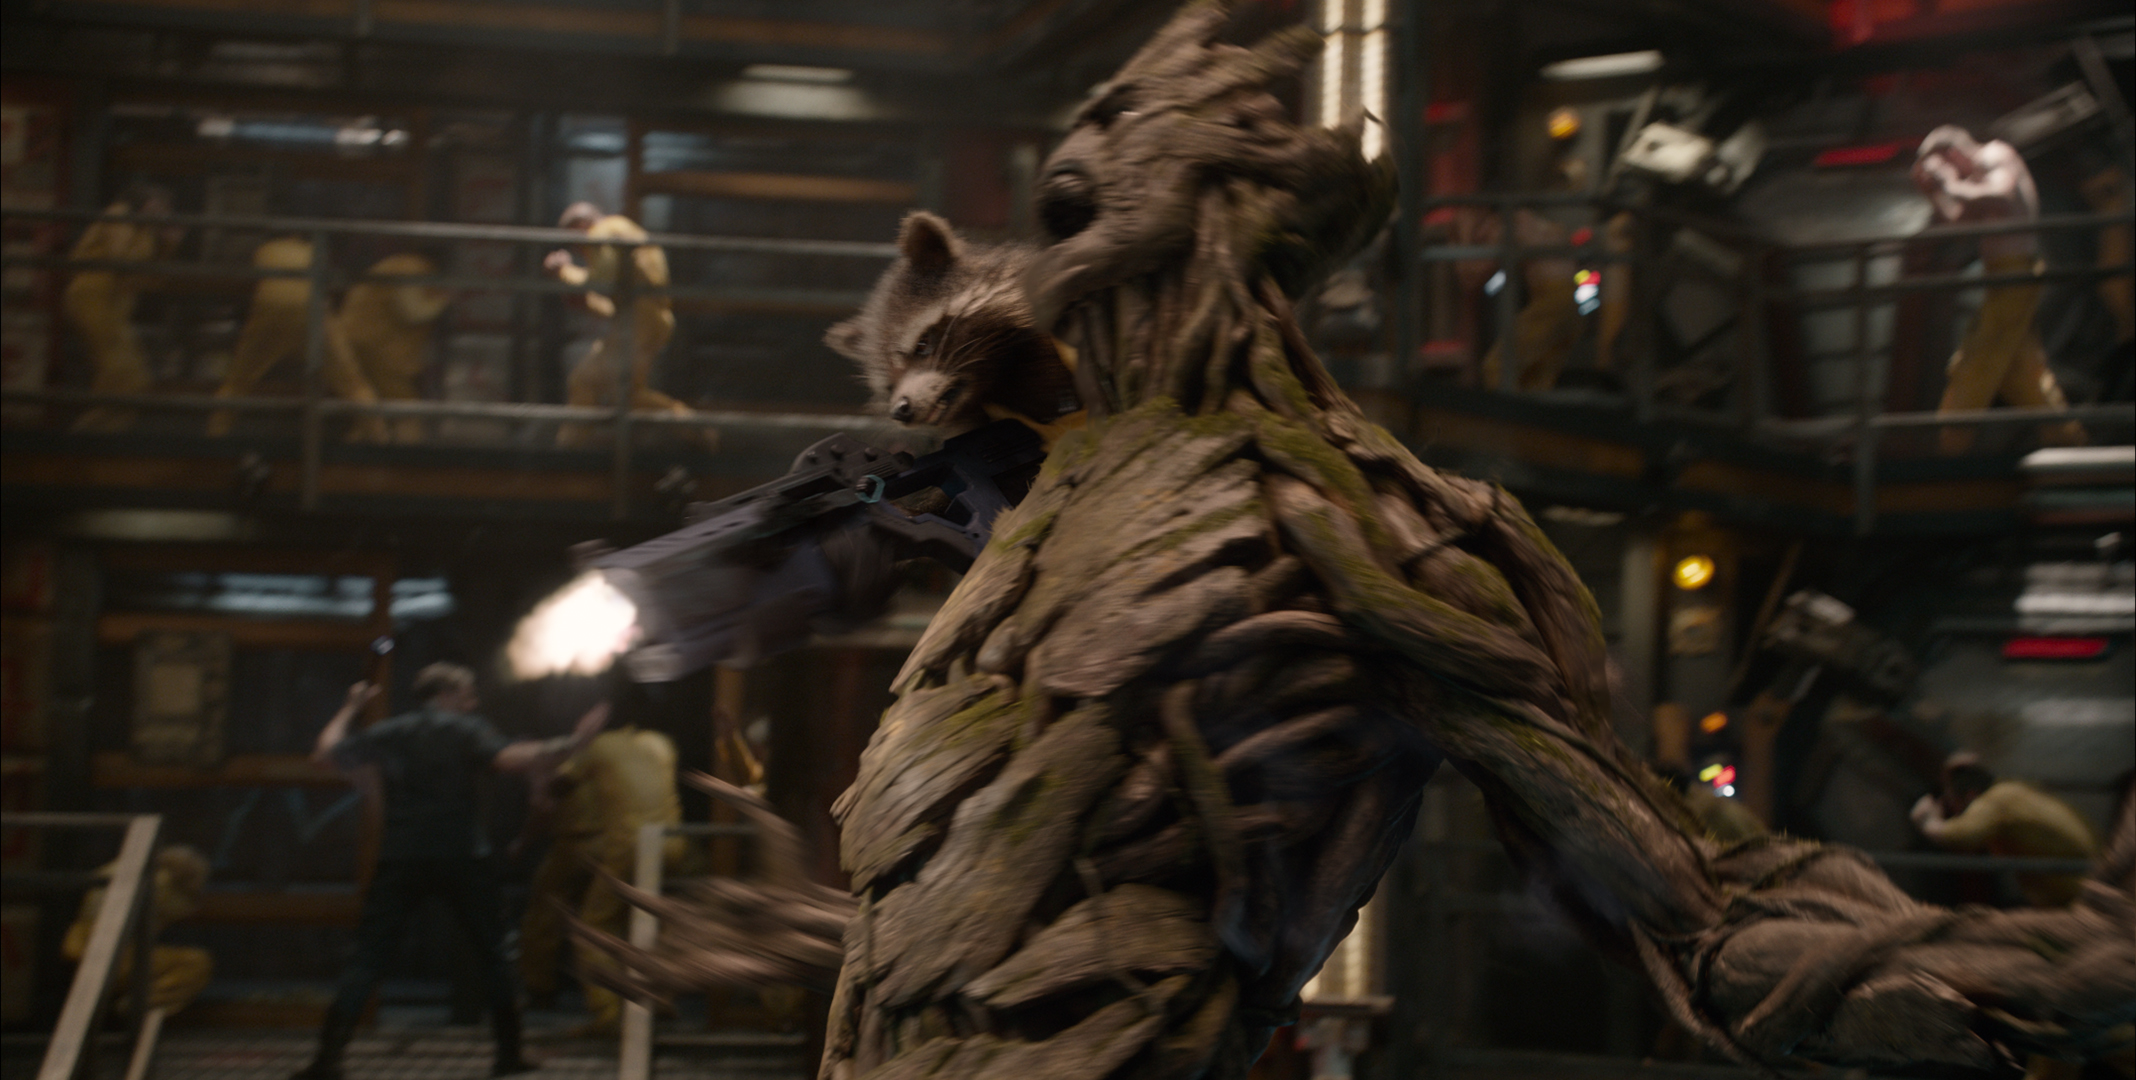 guardians-of-the-galaxy-rocket-raccoon-grootGuardians Of The Galaxy Characters Groot